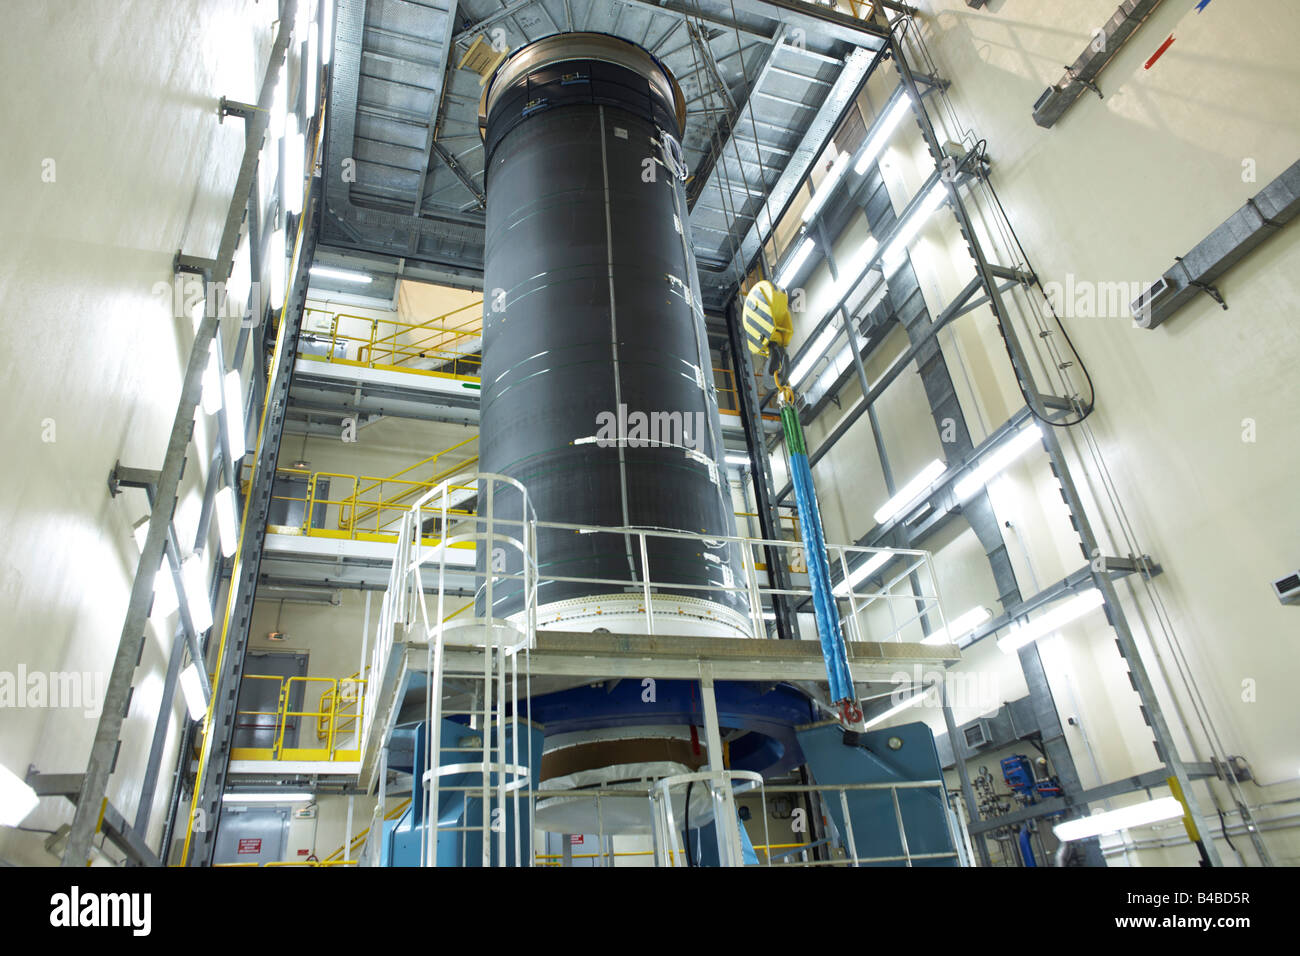 An Ariane 5 rocket in Europropulsion's Booster Integration Building at the European Space Agency's Kourou - Stock Image